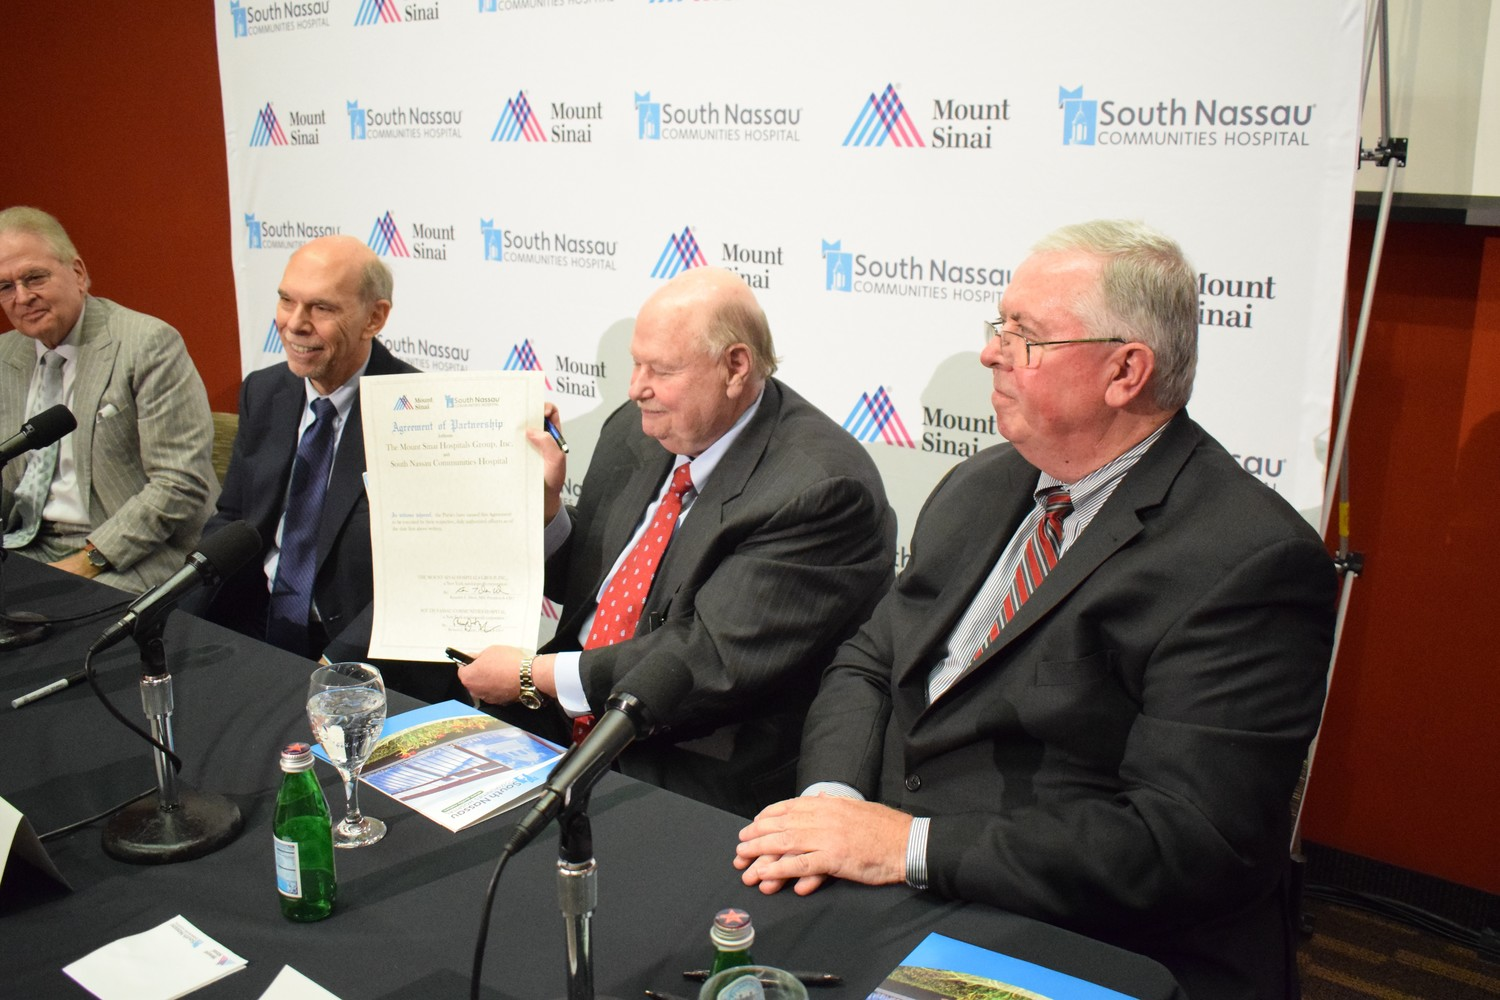 Representatives of South Nassau Communities Hospital and the Mount Sinai Health System announced their partnership Tuesday. Joseph Fennessy, the chairman of SNCH's board of directors, held the ceremonial agreement that was signed. WIth him, from left, were Mount Sinai President Dr. Arthur Klein, Mount Sinai CEO Dr. Kenneth Davis and South Nassau President and CEO Richard Murphy.